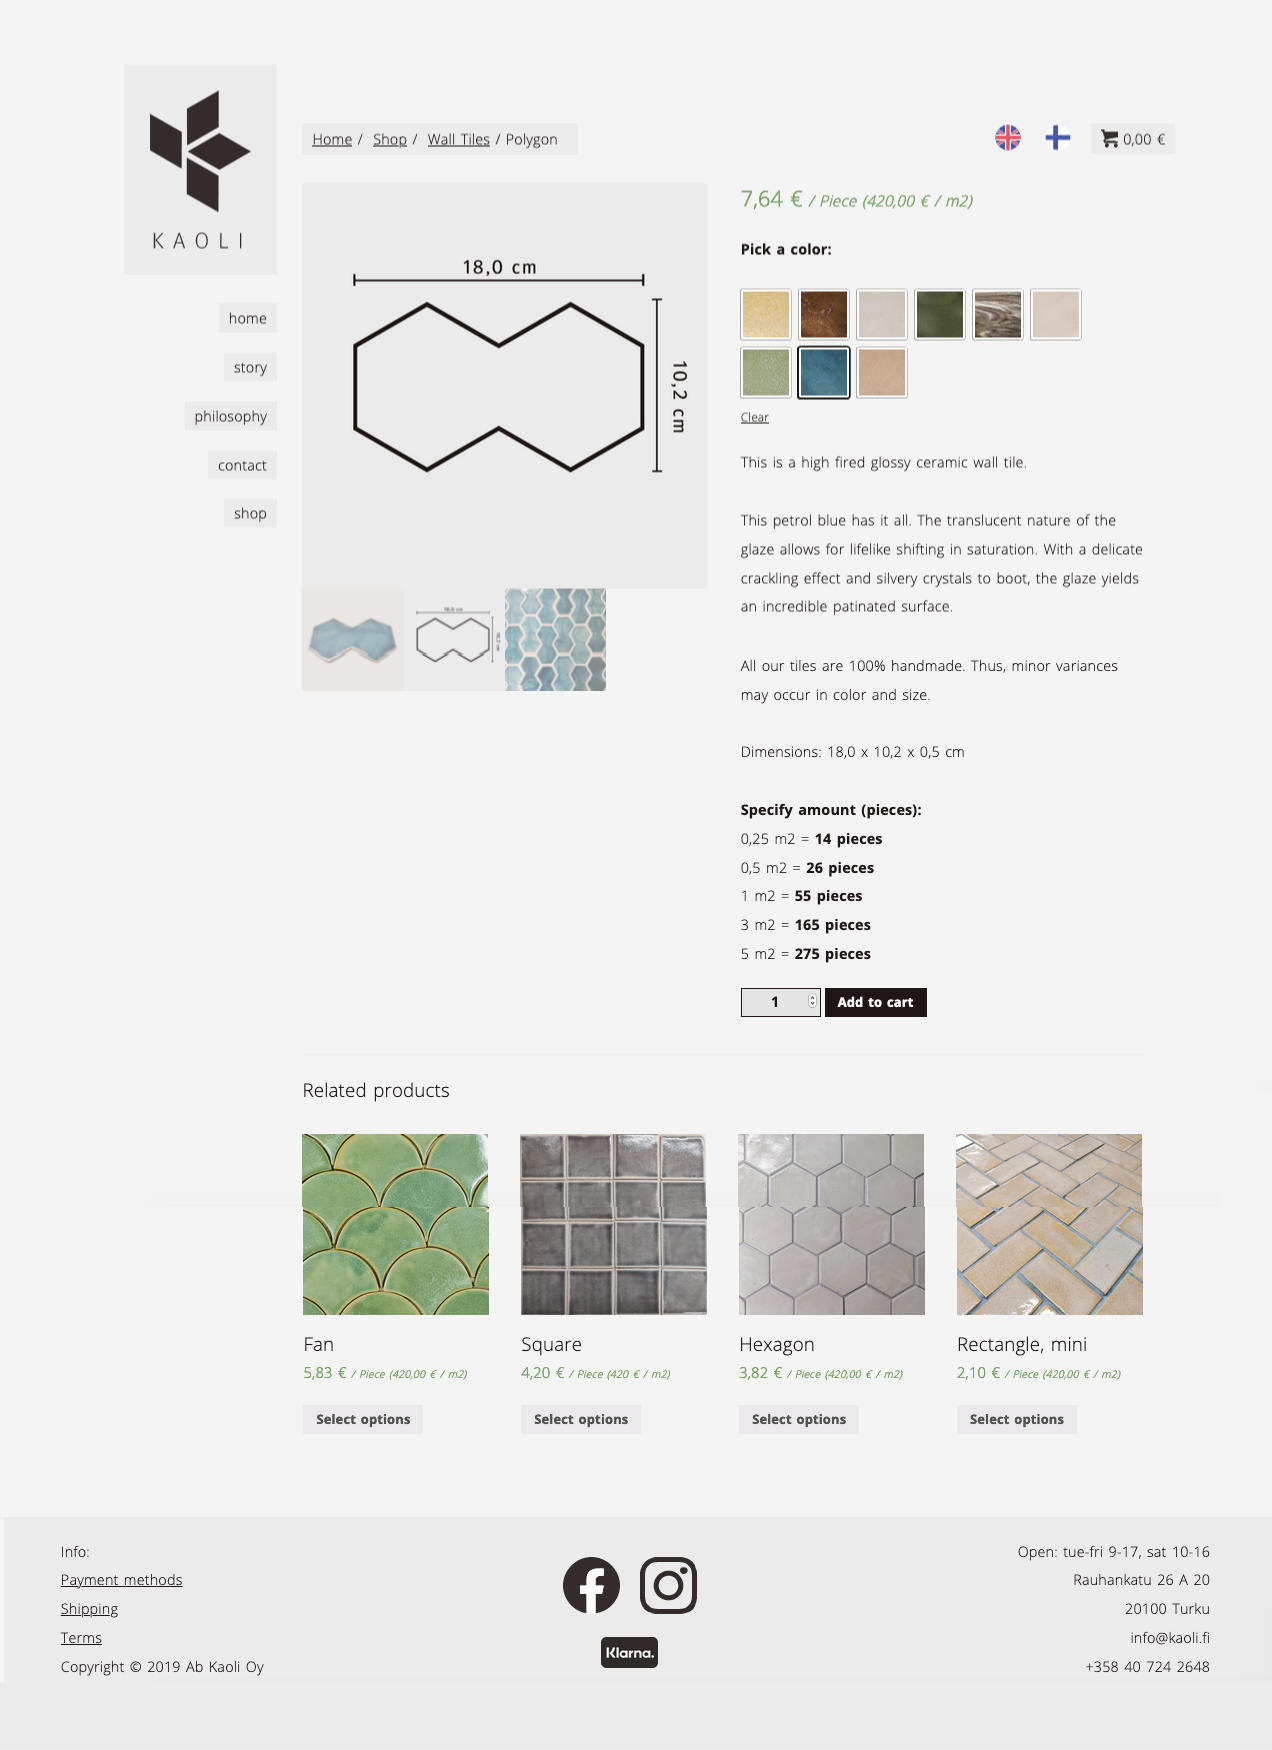 Webshop and website for Kaoli, based on the layout designed by the owner Casper Tuomaala. Made by Olli Karvonen.